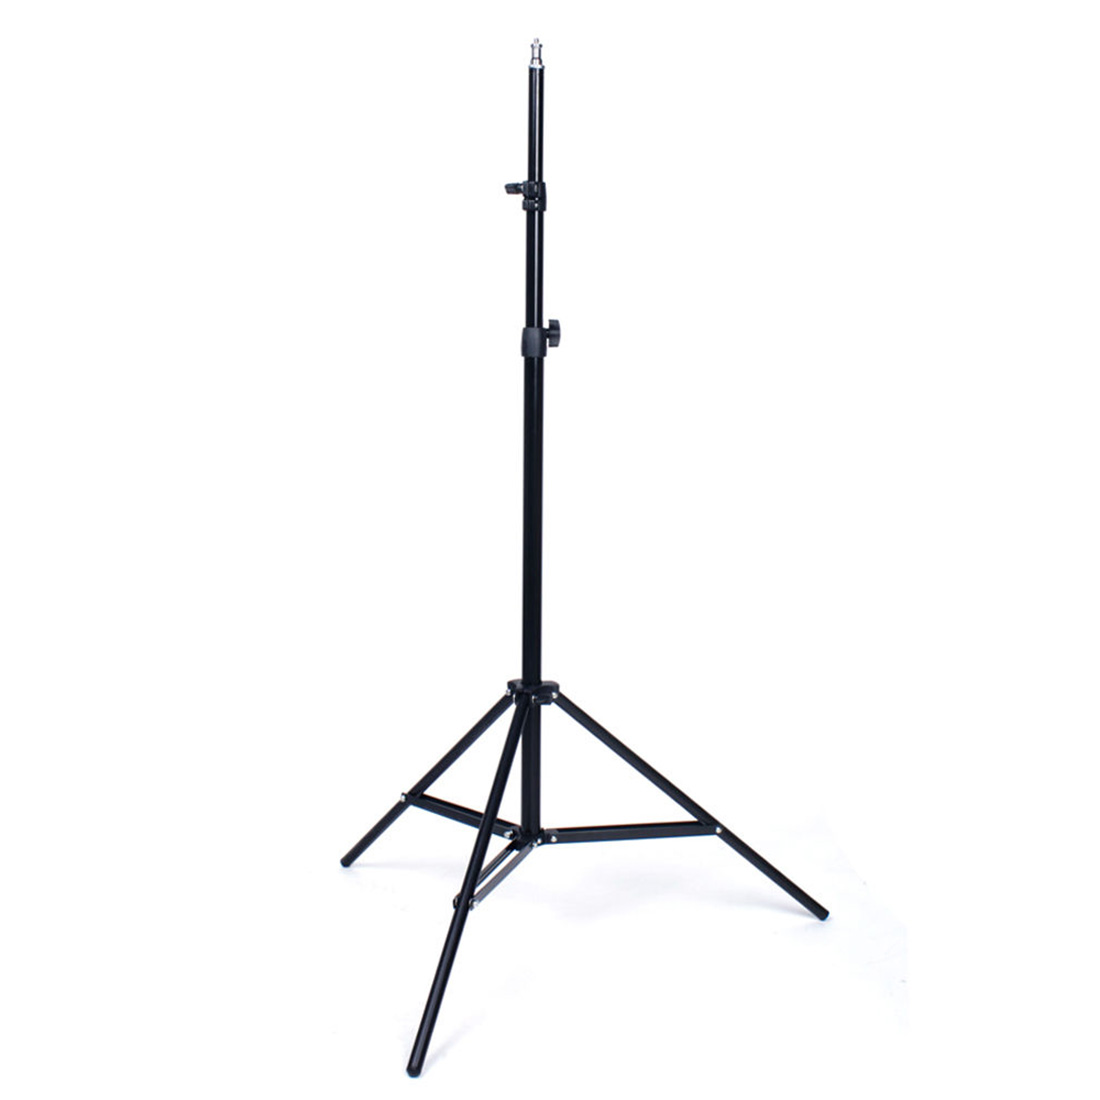 Professional Studio Adjustable Soft Box Flash Continuous Light Stand Tripod for Photography